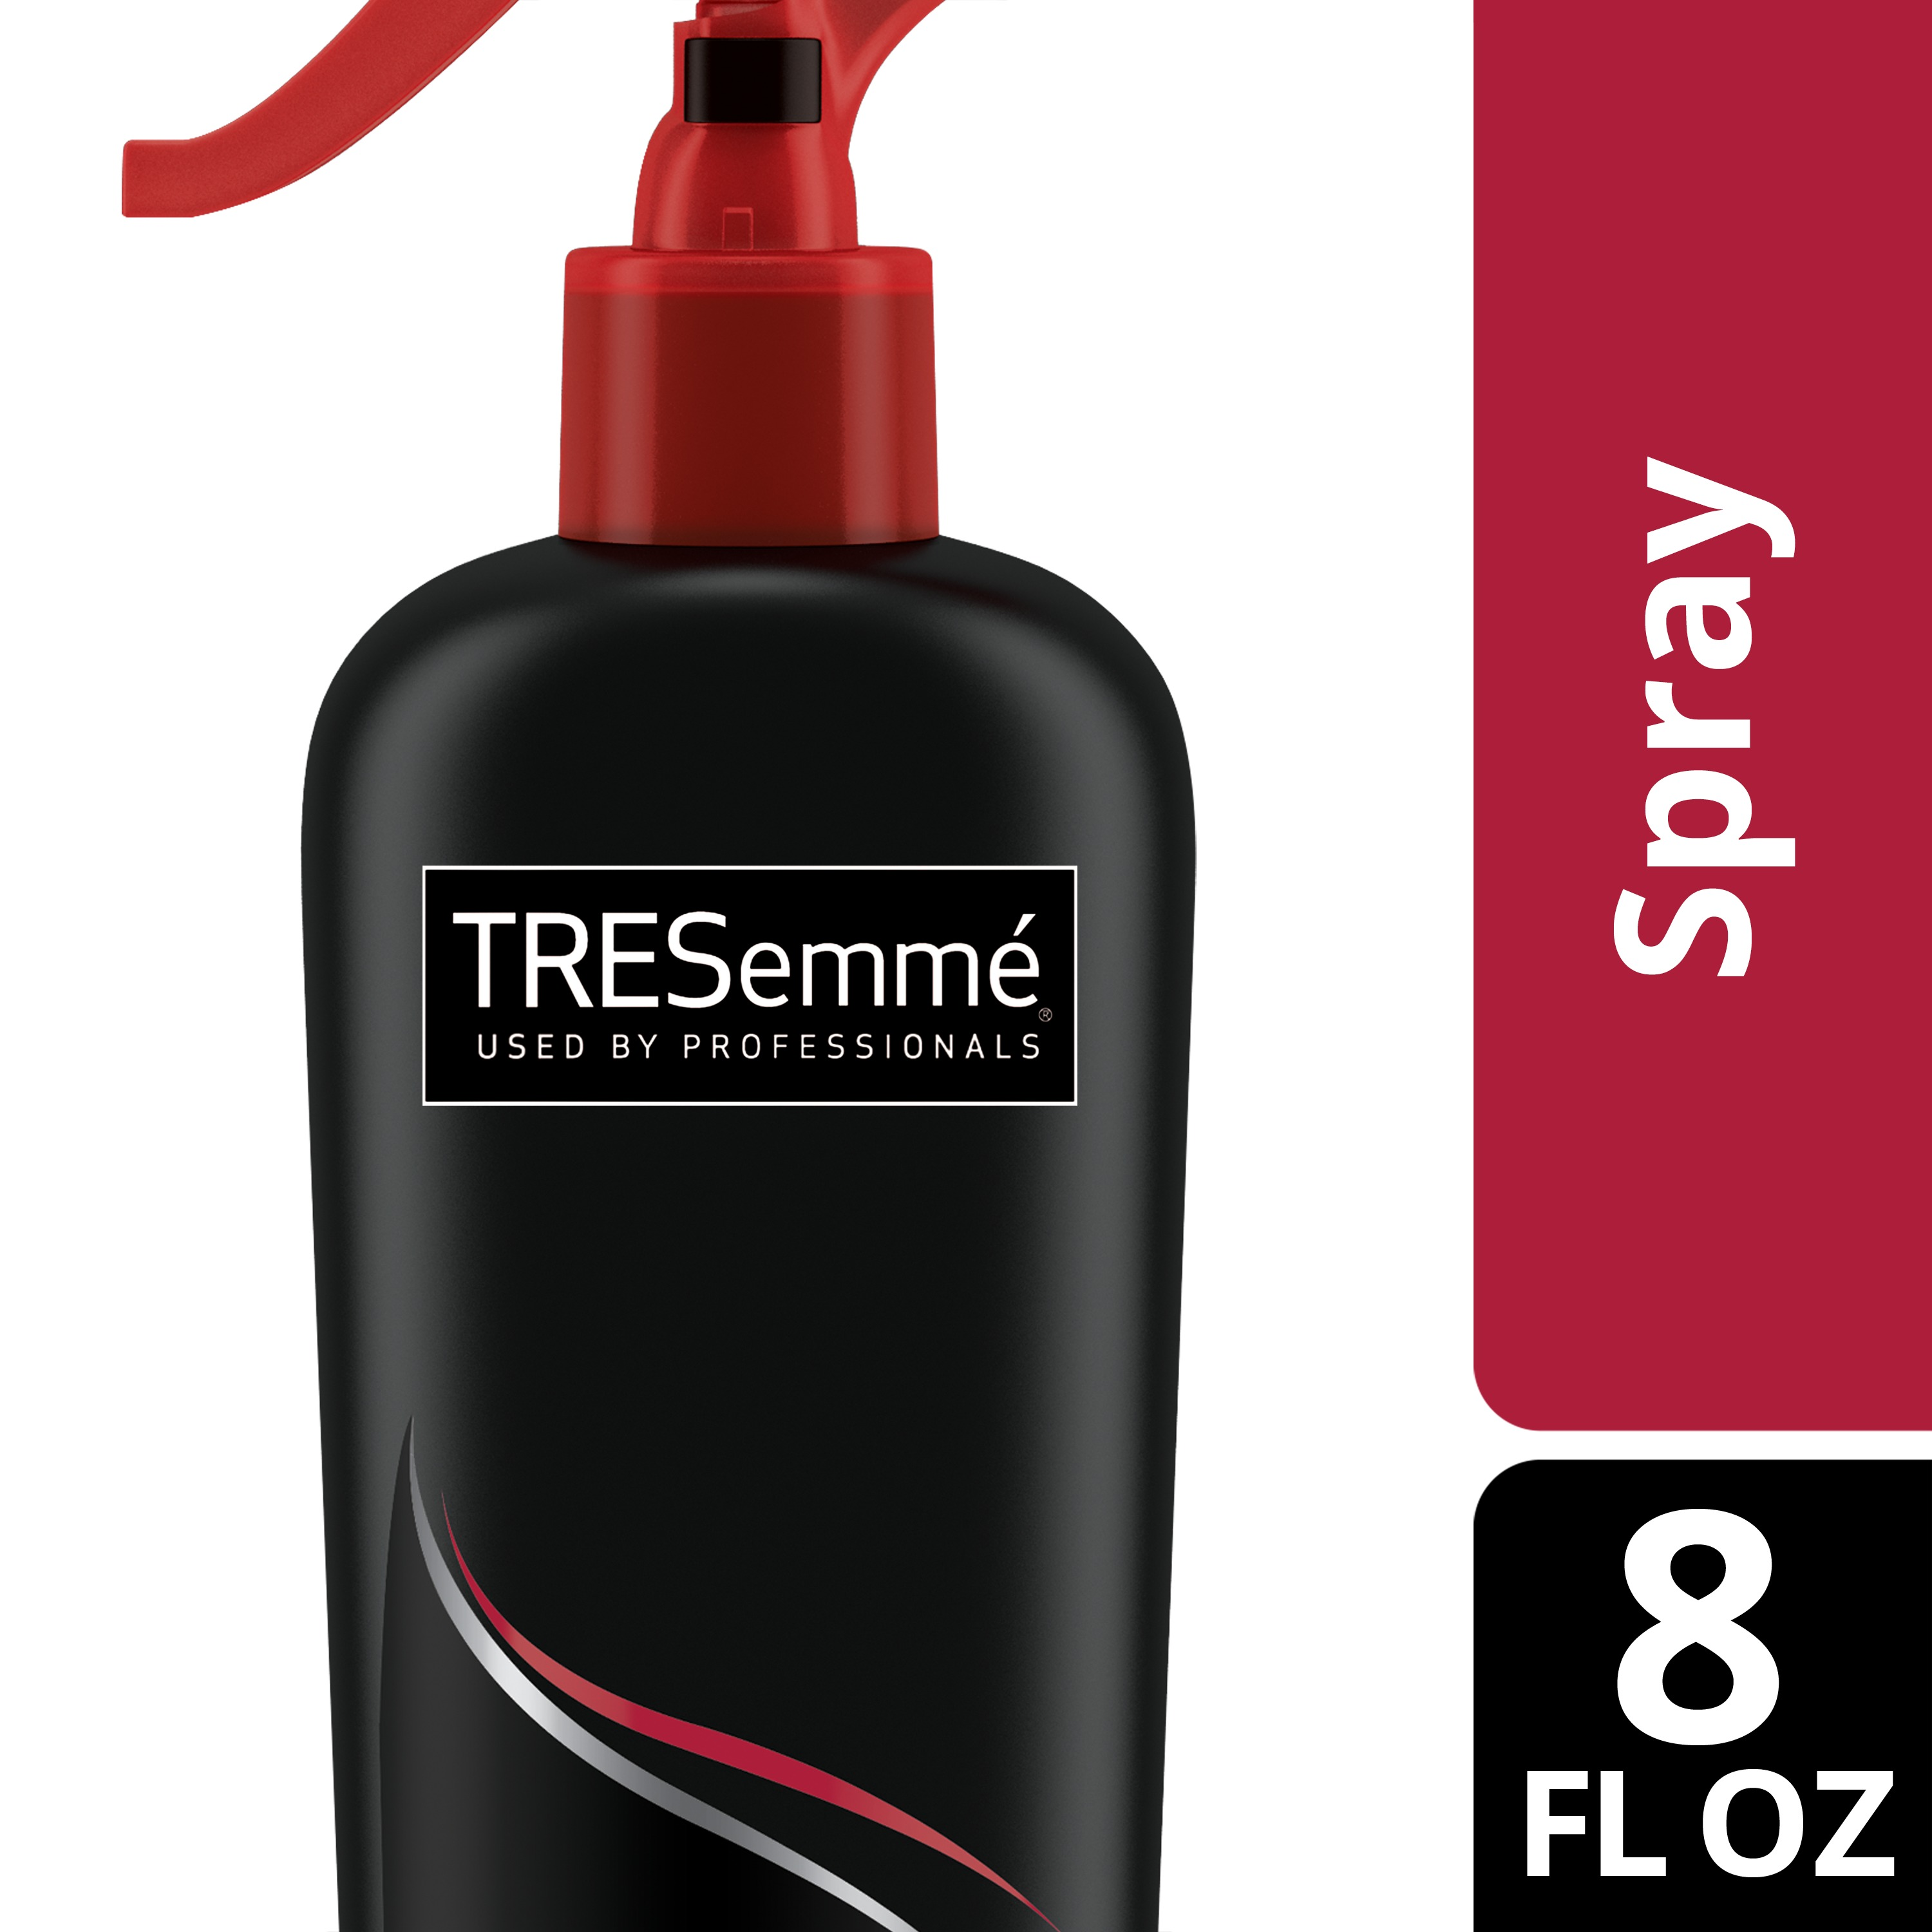 TRESemmé Thermal Creations Heat Tamer Spray, 8 Oz